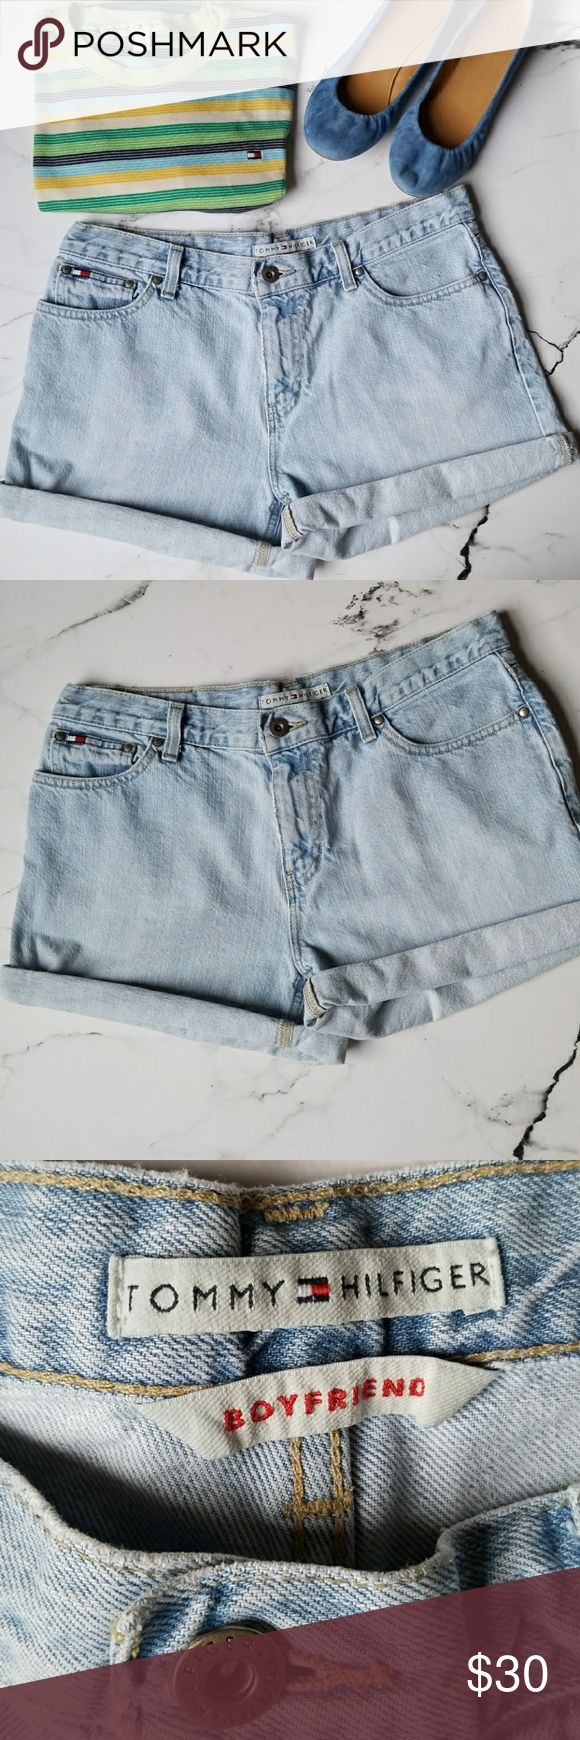 """Vintage Tommy Hilfiger Boyfriend Shorts Light wash, boyfriend style vintage shorts from Tommy Hilfiger.  No size tag but fits like a size 8.  Some wear along the edges that gives authentic vintage look.  Inseam (when unrolled) measures 4"""" and waist when laid flat is 16.25"""" Tommy Hilfiger Shorts Jean Shorts"""